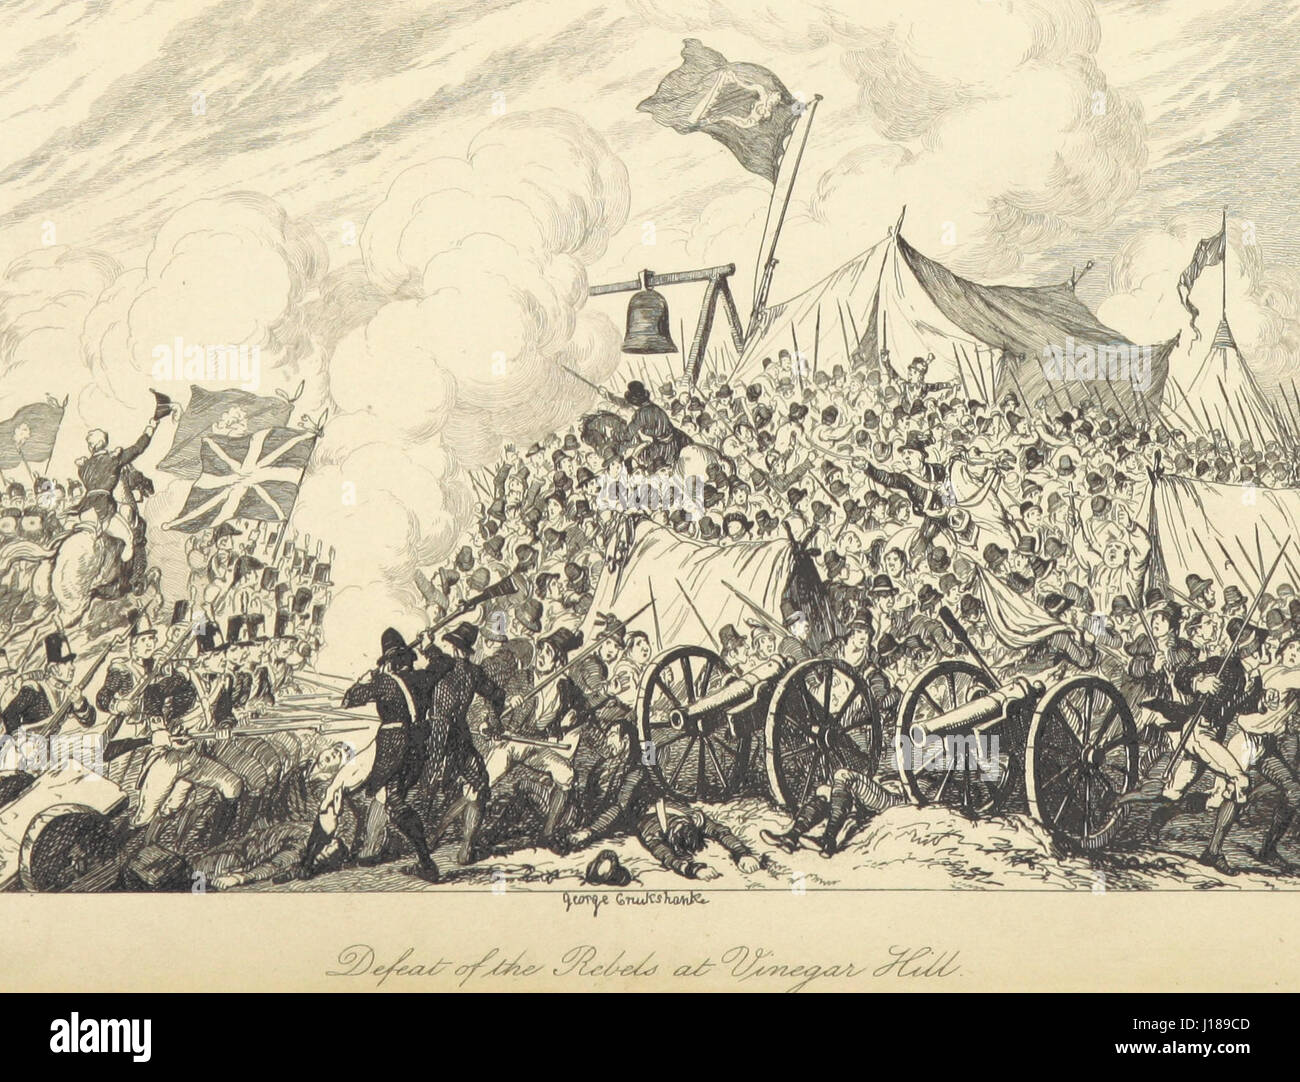 Defeat of the Rebels at Vinegar Hill by George Cruikshank - Enniscorthy, County Wexford - June 21, 1798. - Stock Image